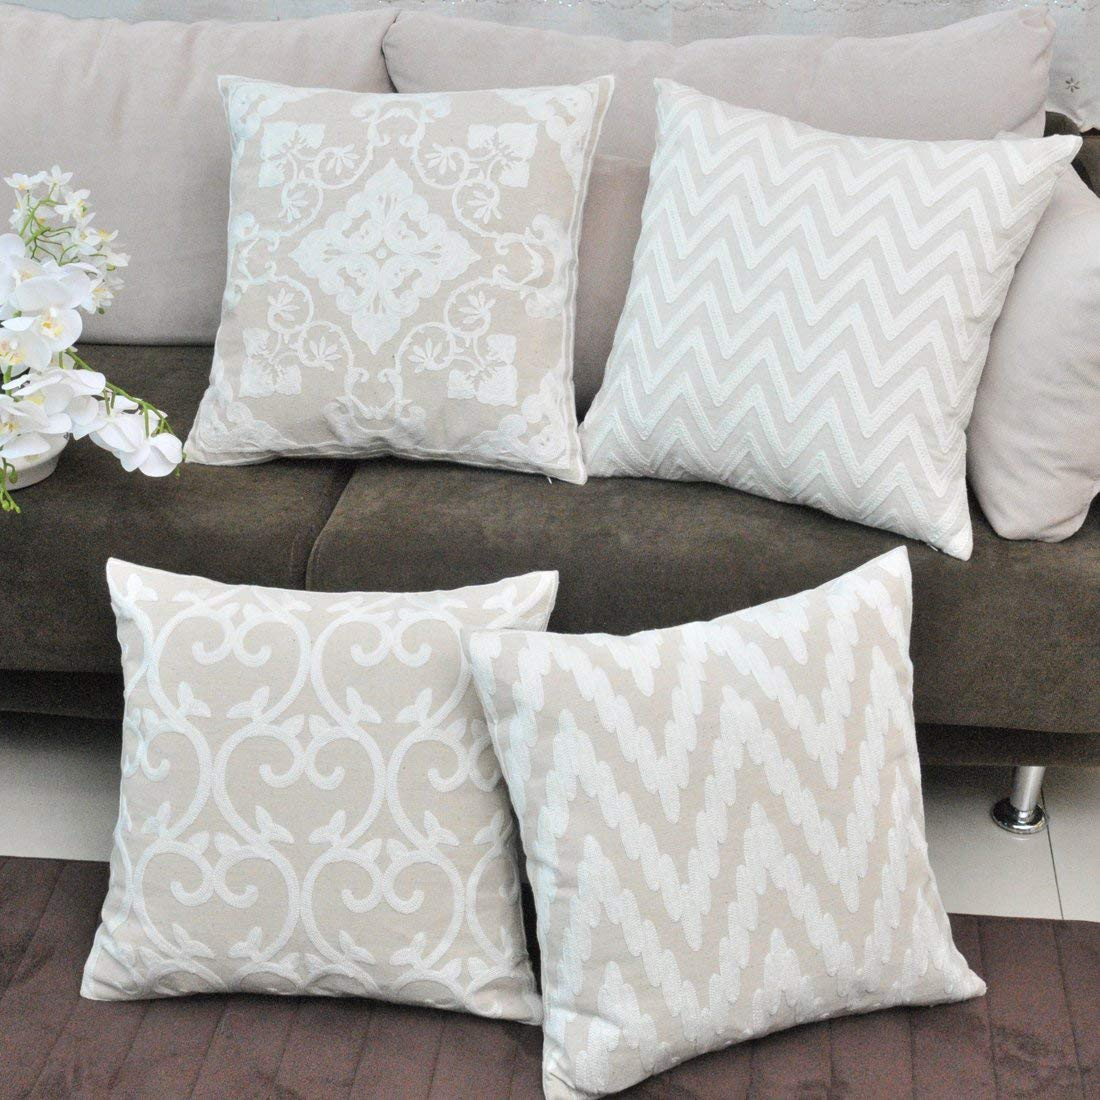 Fall Inspired Throw Pillow Covers